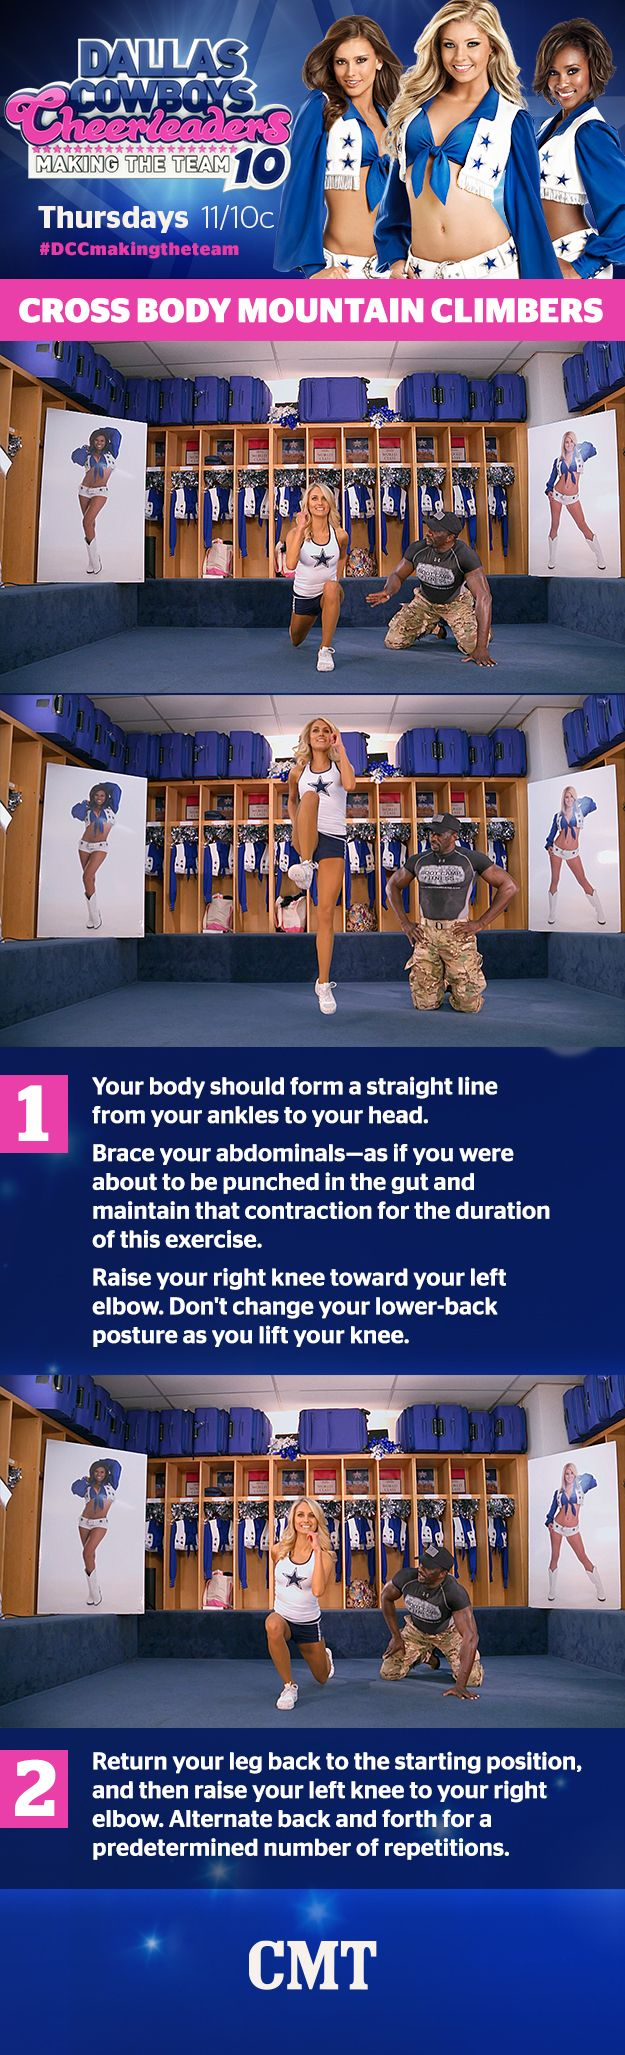 Happy #WorkoutWednesday! Let's get those legs in shape with the Cross Body Mountain Climbers. #DCCMakingTheTeam